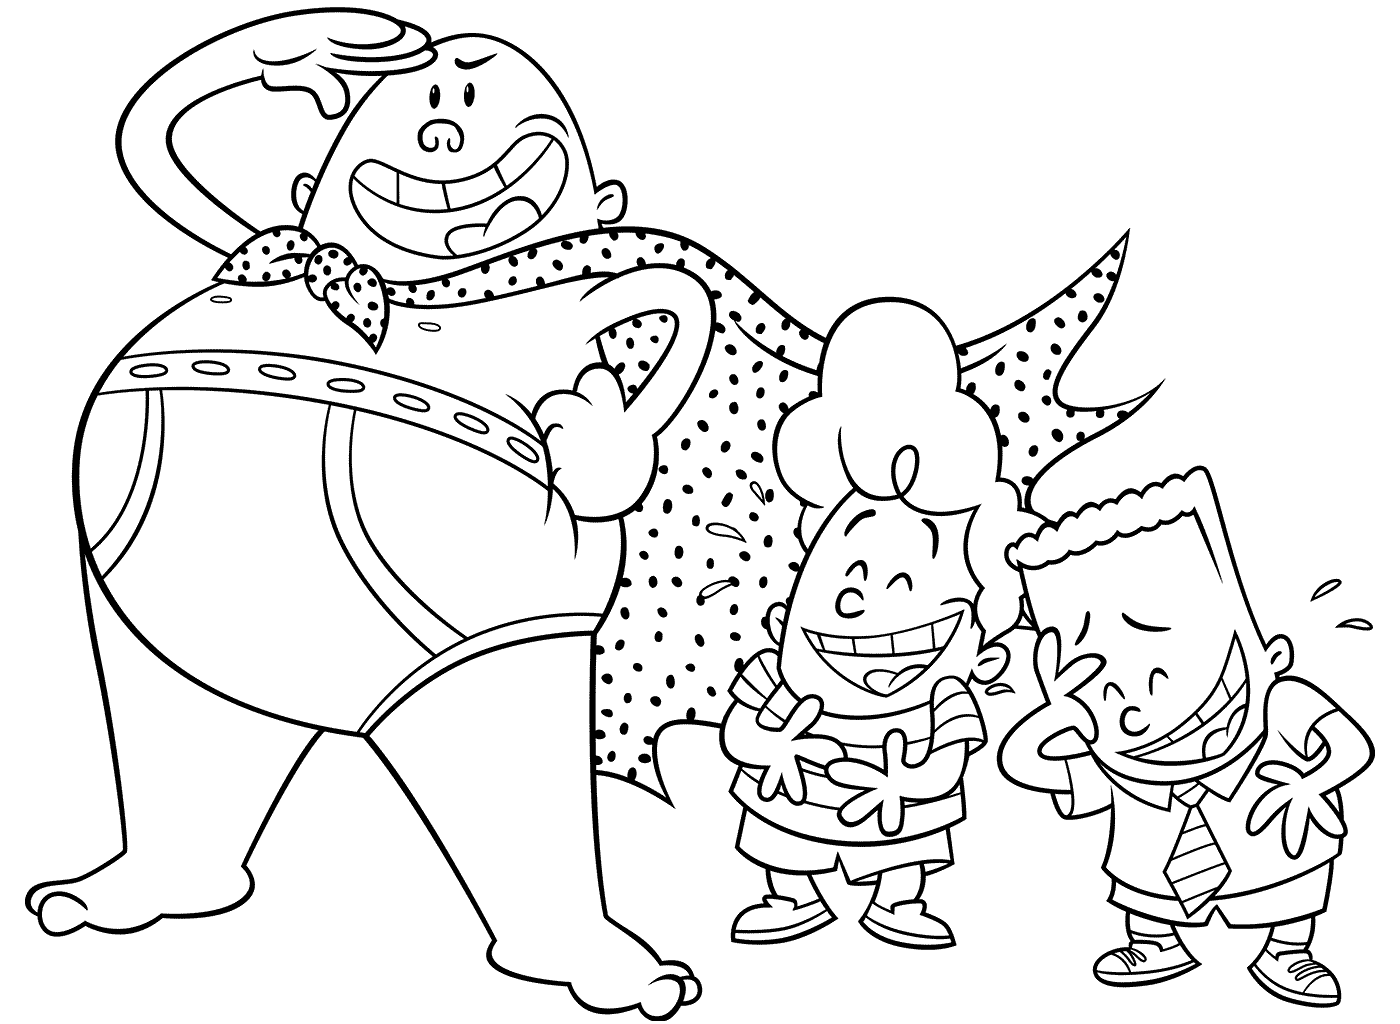 captain underpants pictures to print free printable captain underpants coloring pages scribblefun print underpants pictures captain to